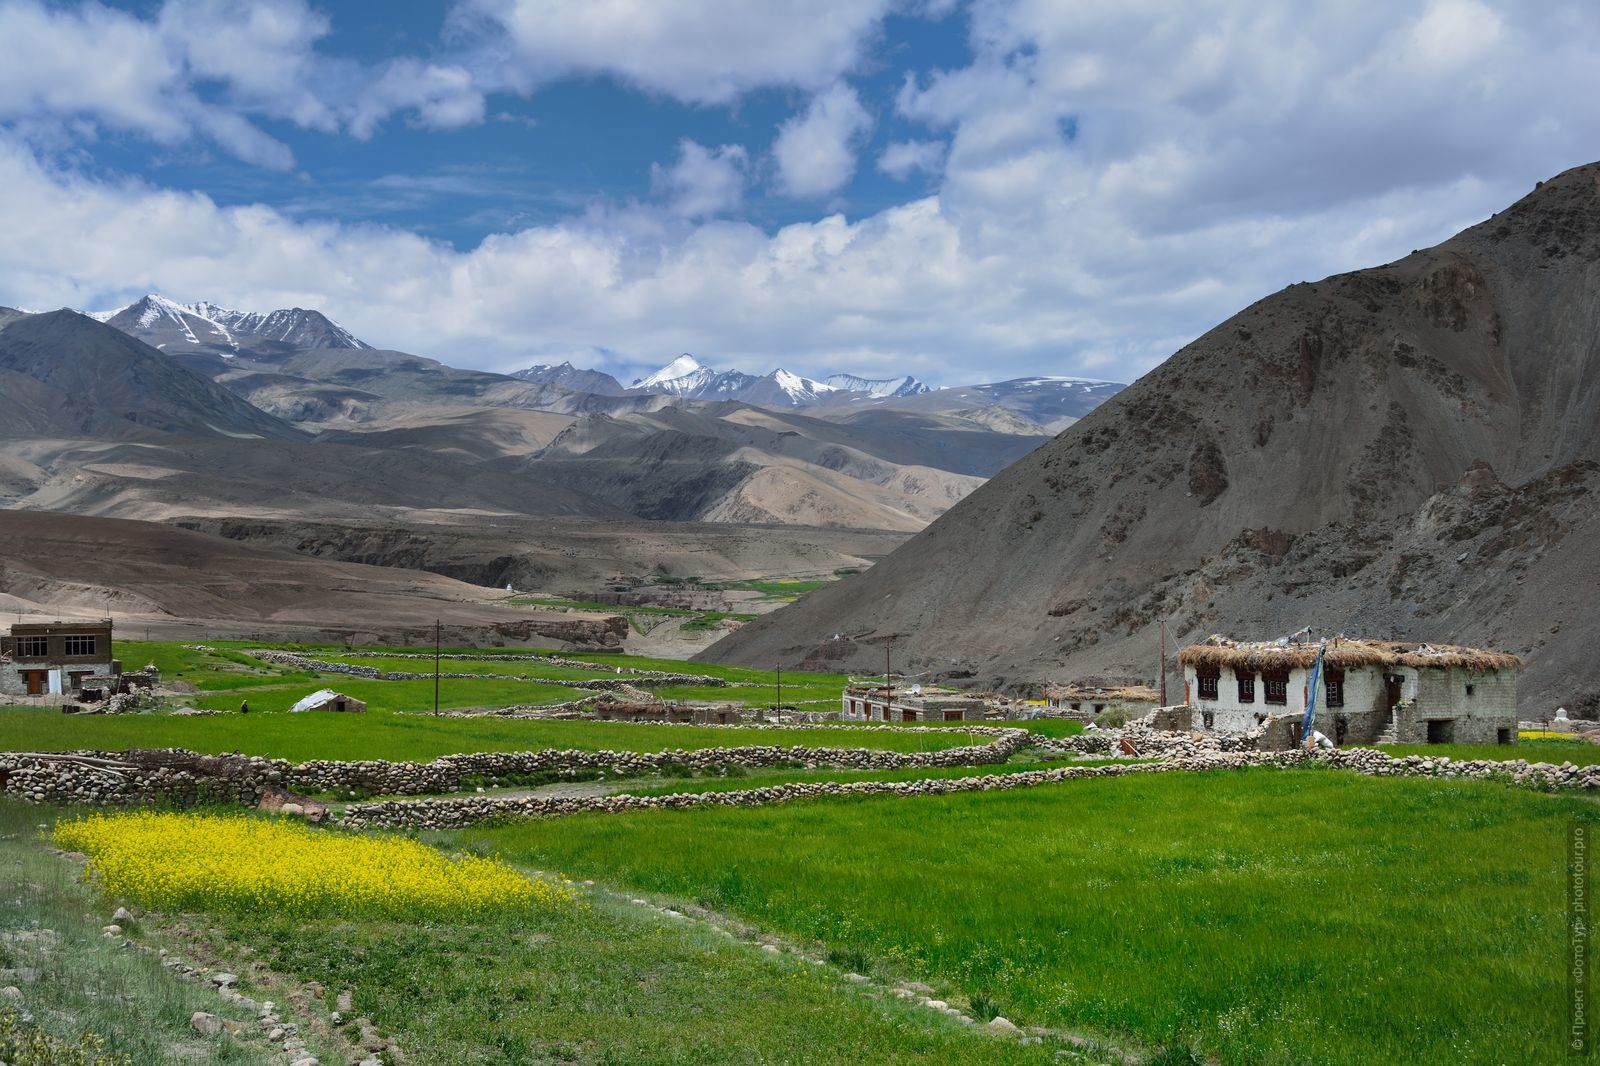 Rumtse Village. Tour Legends of Tibet: Ladakh, Lamayuru, Da Khan and Nubra, 19.09. - 28.09.2019.